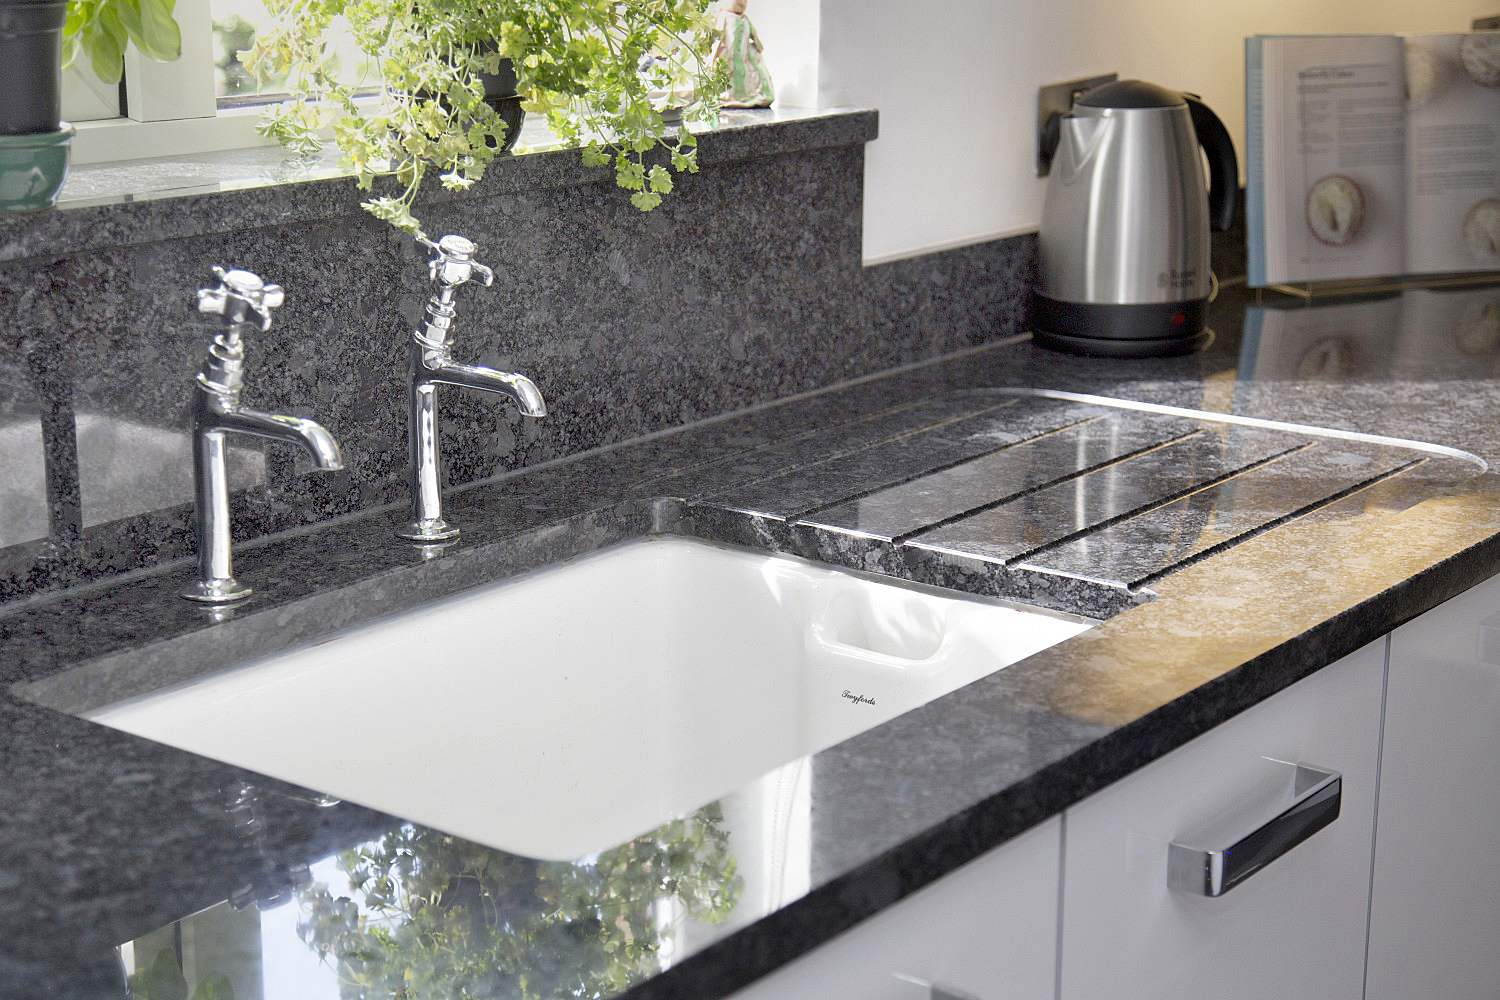 granite worktop store low prices in granite and quartz. Black Bedroom Furniture Sets. Home Design Ideas